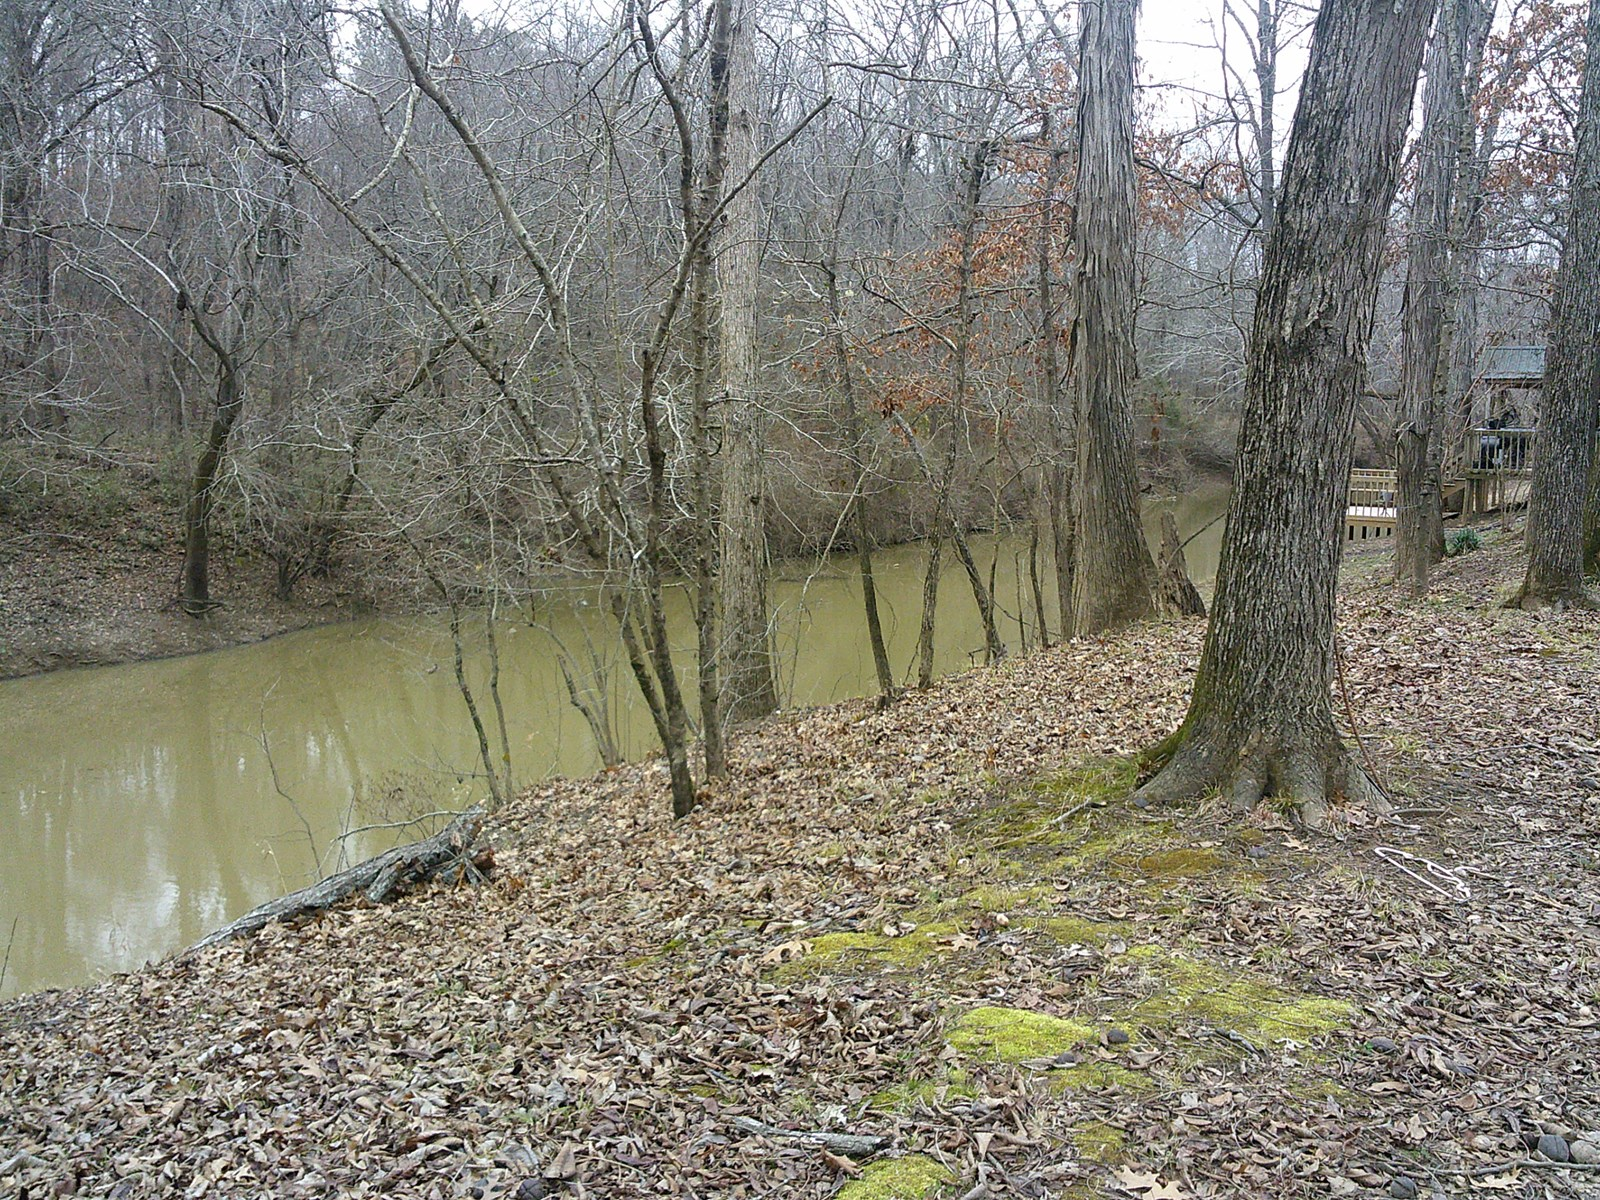 WATERFRONT LAND FOR SALE, FISHING, BOATING, NEAR TN RIVER